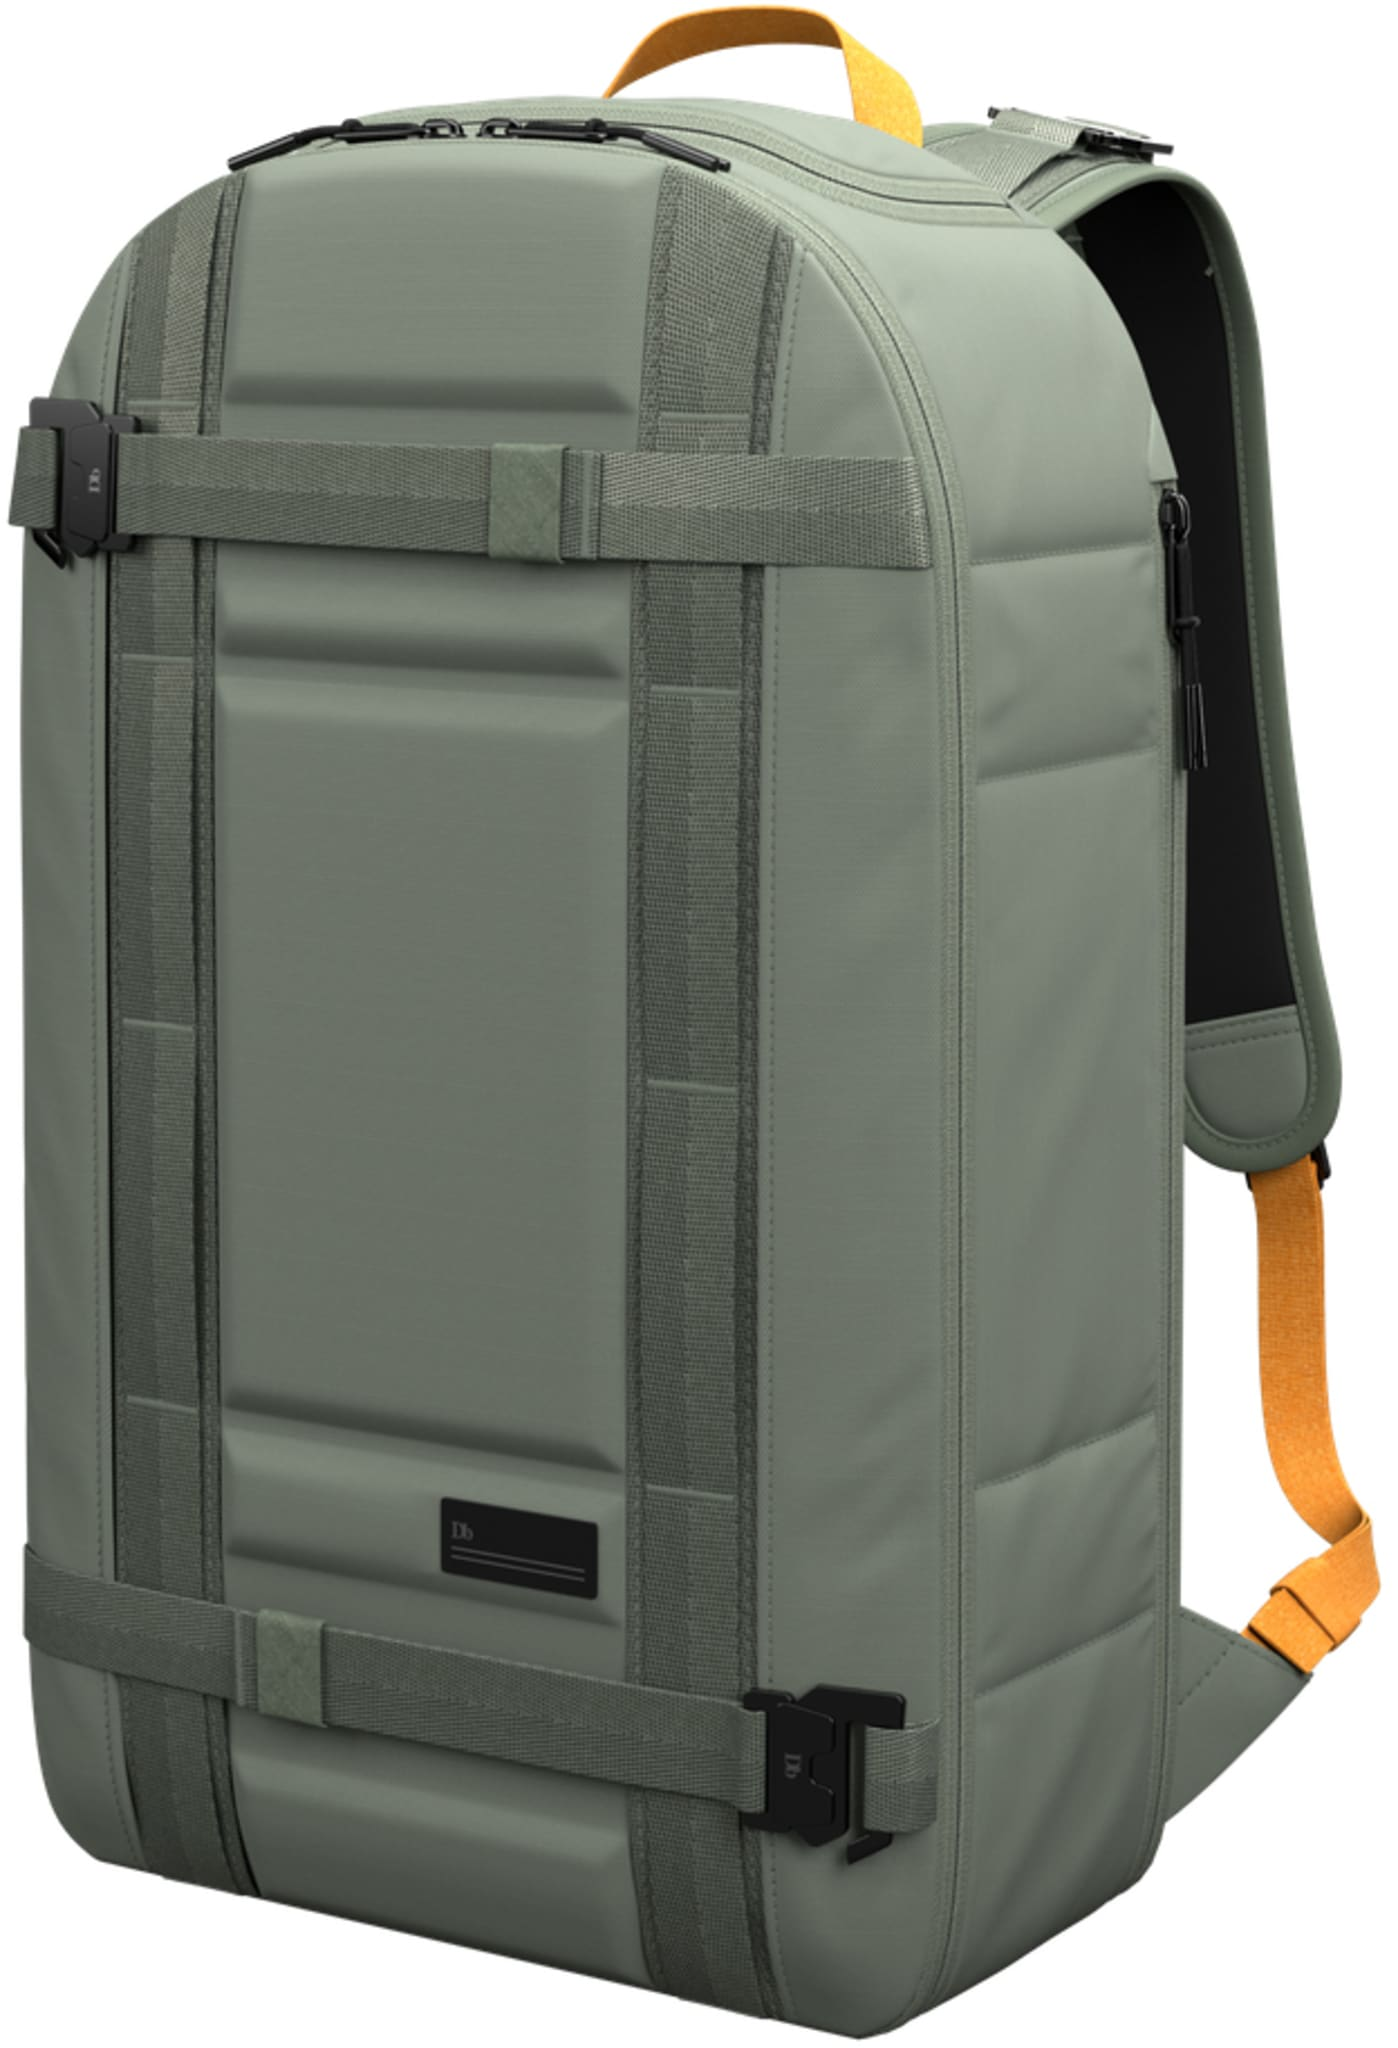 The Backpack 21L